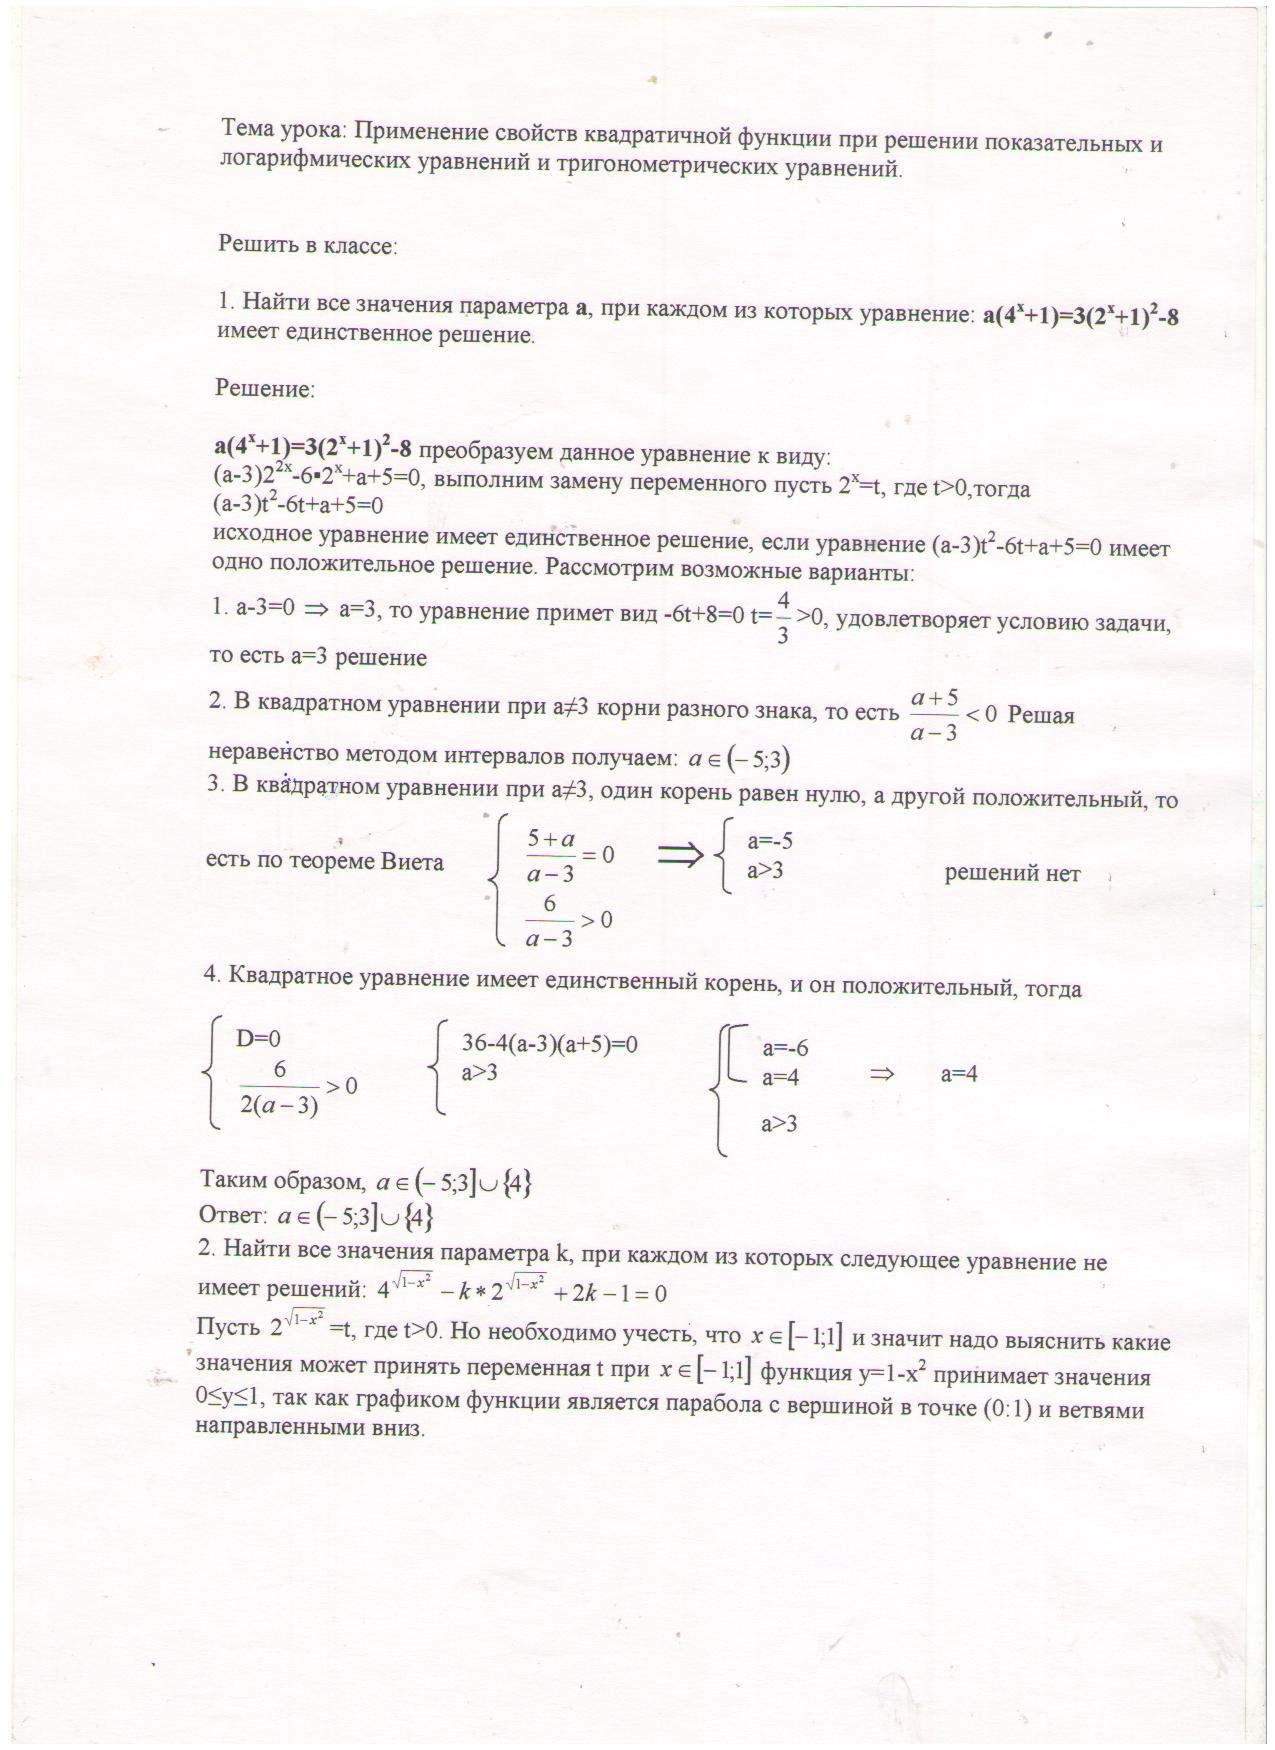 C:\Documents and Settings\23\Рабочий стол\урок\второй\1.jpg